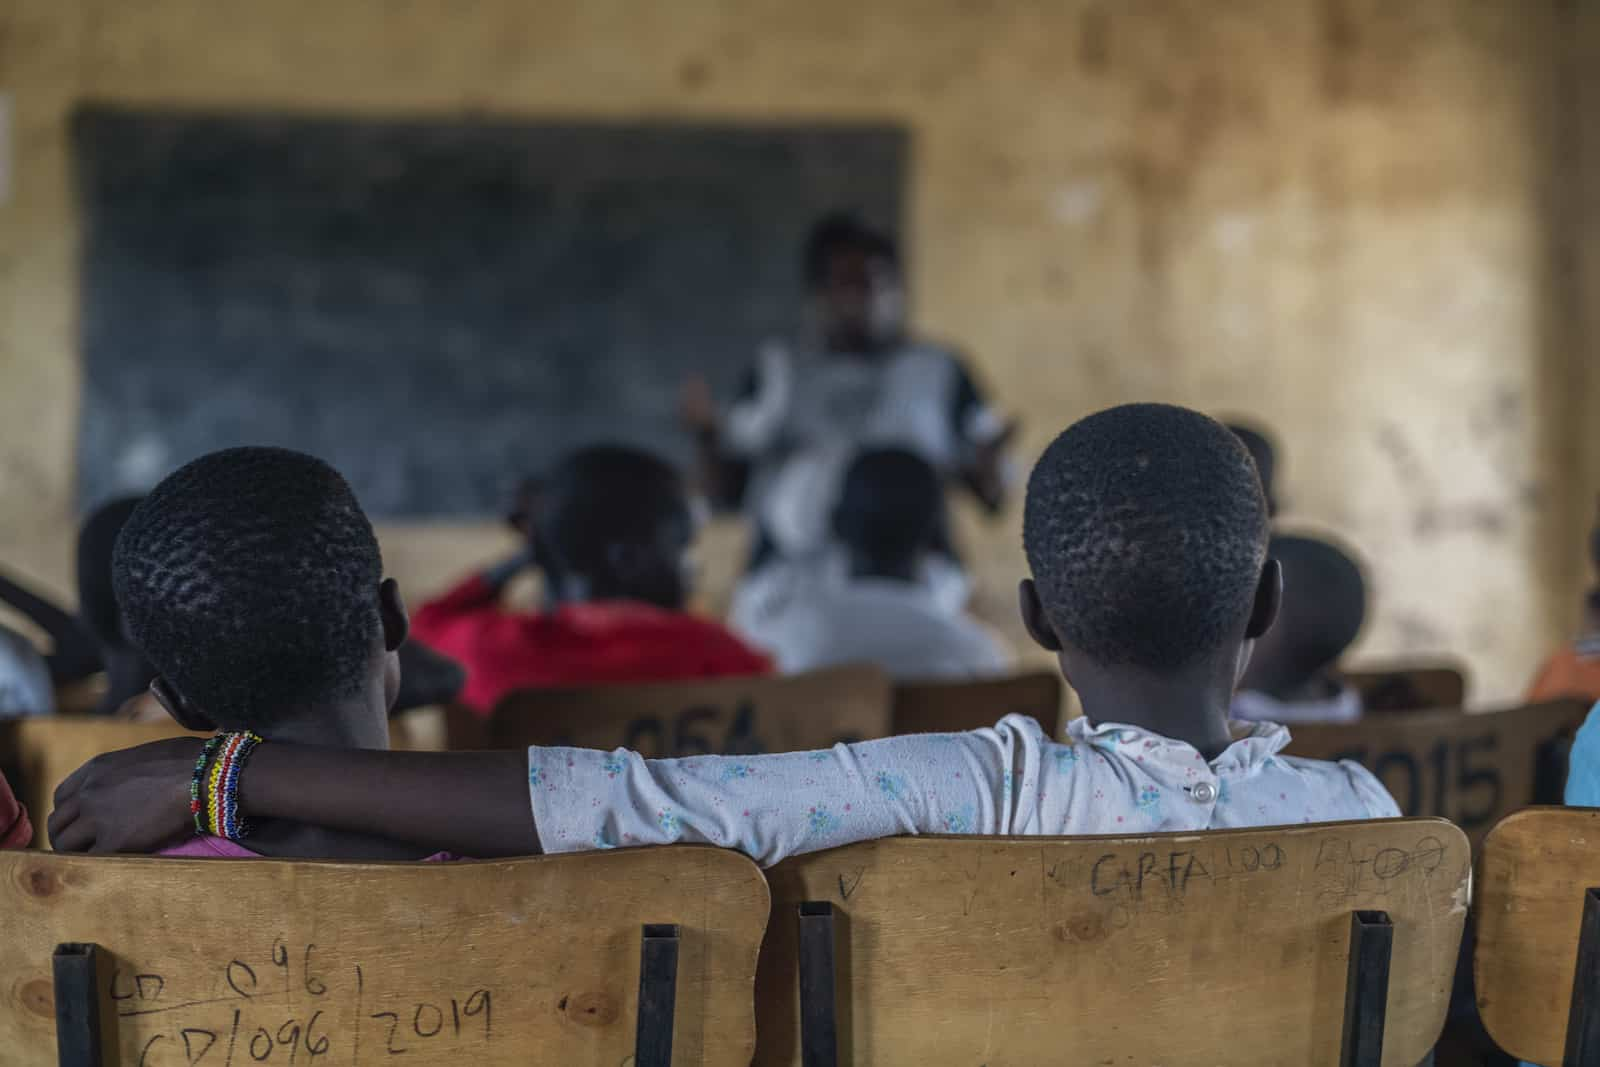 Children sit in a school for girls who have escaped FGM, listening to a woman standing in front of the class.